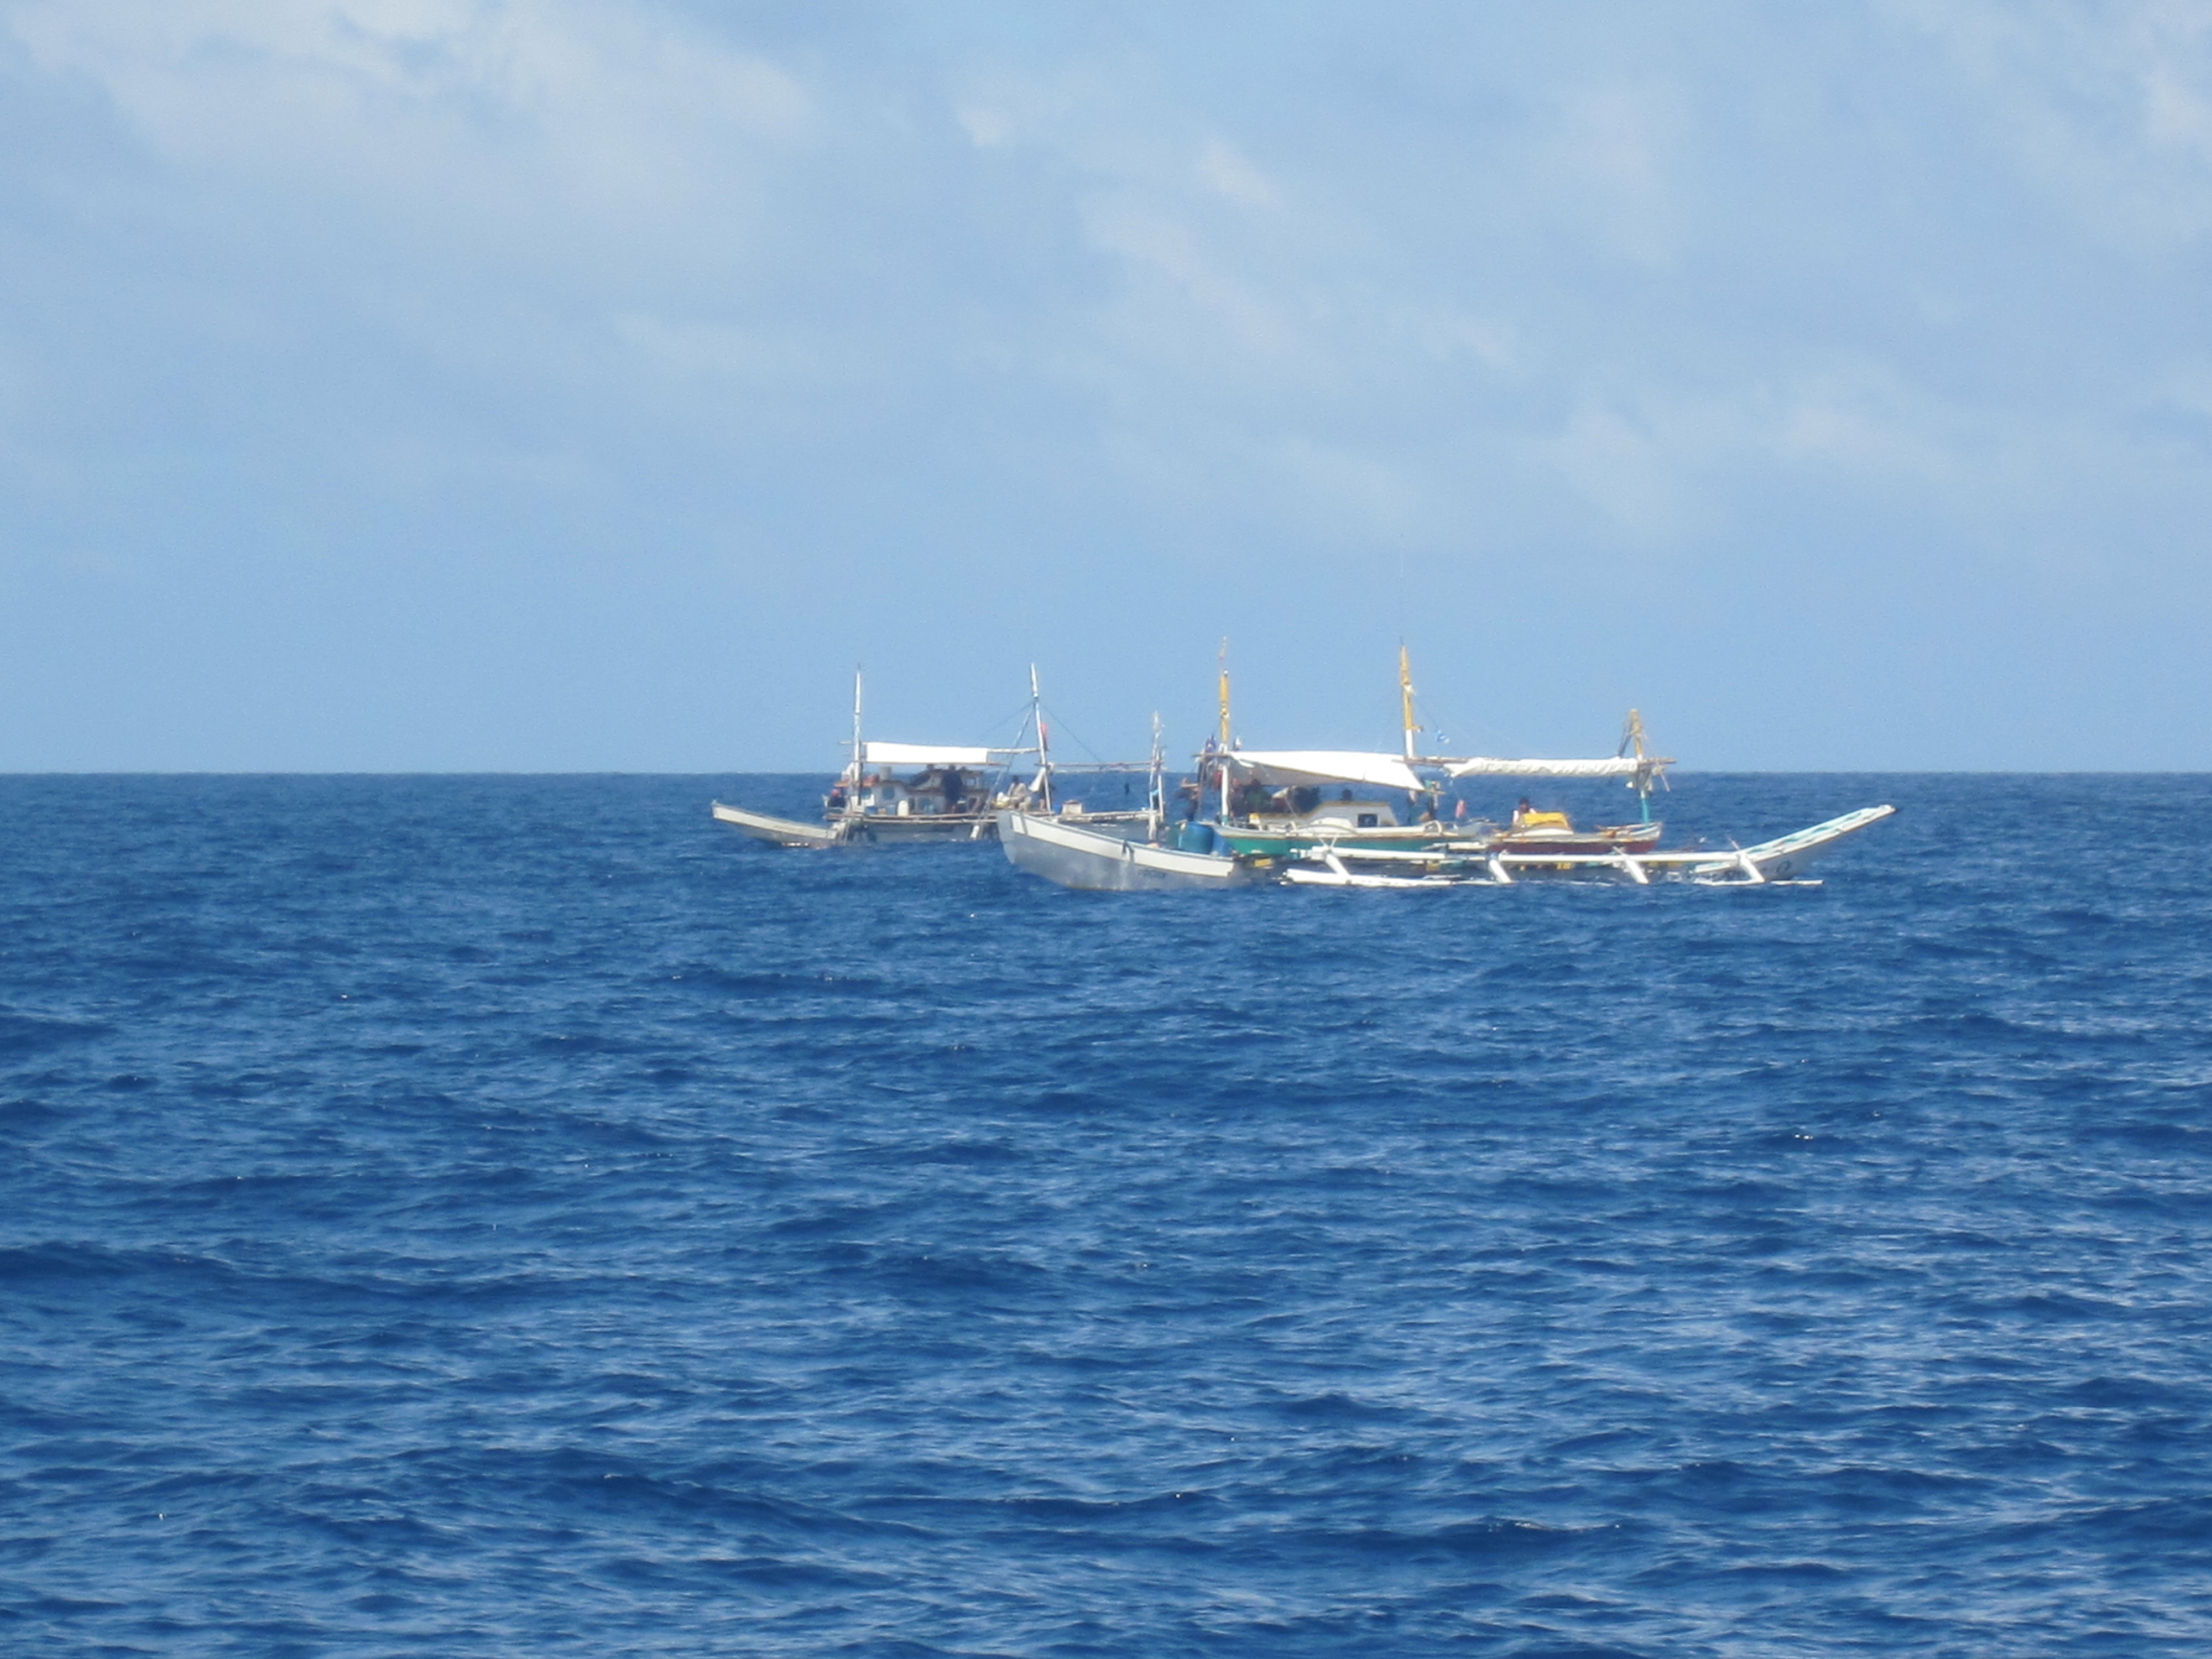 A Philippine fishing vessel